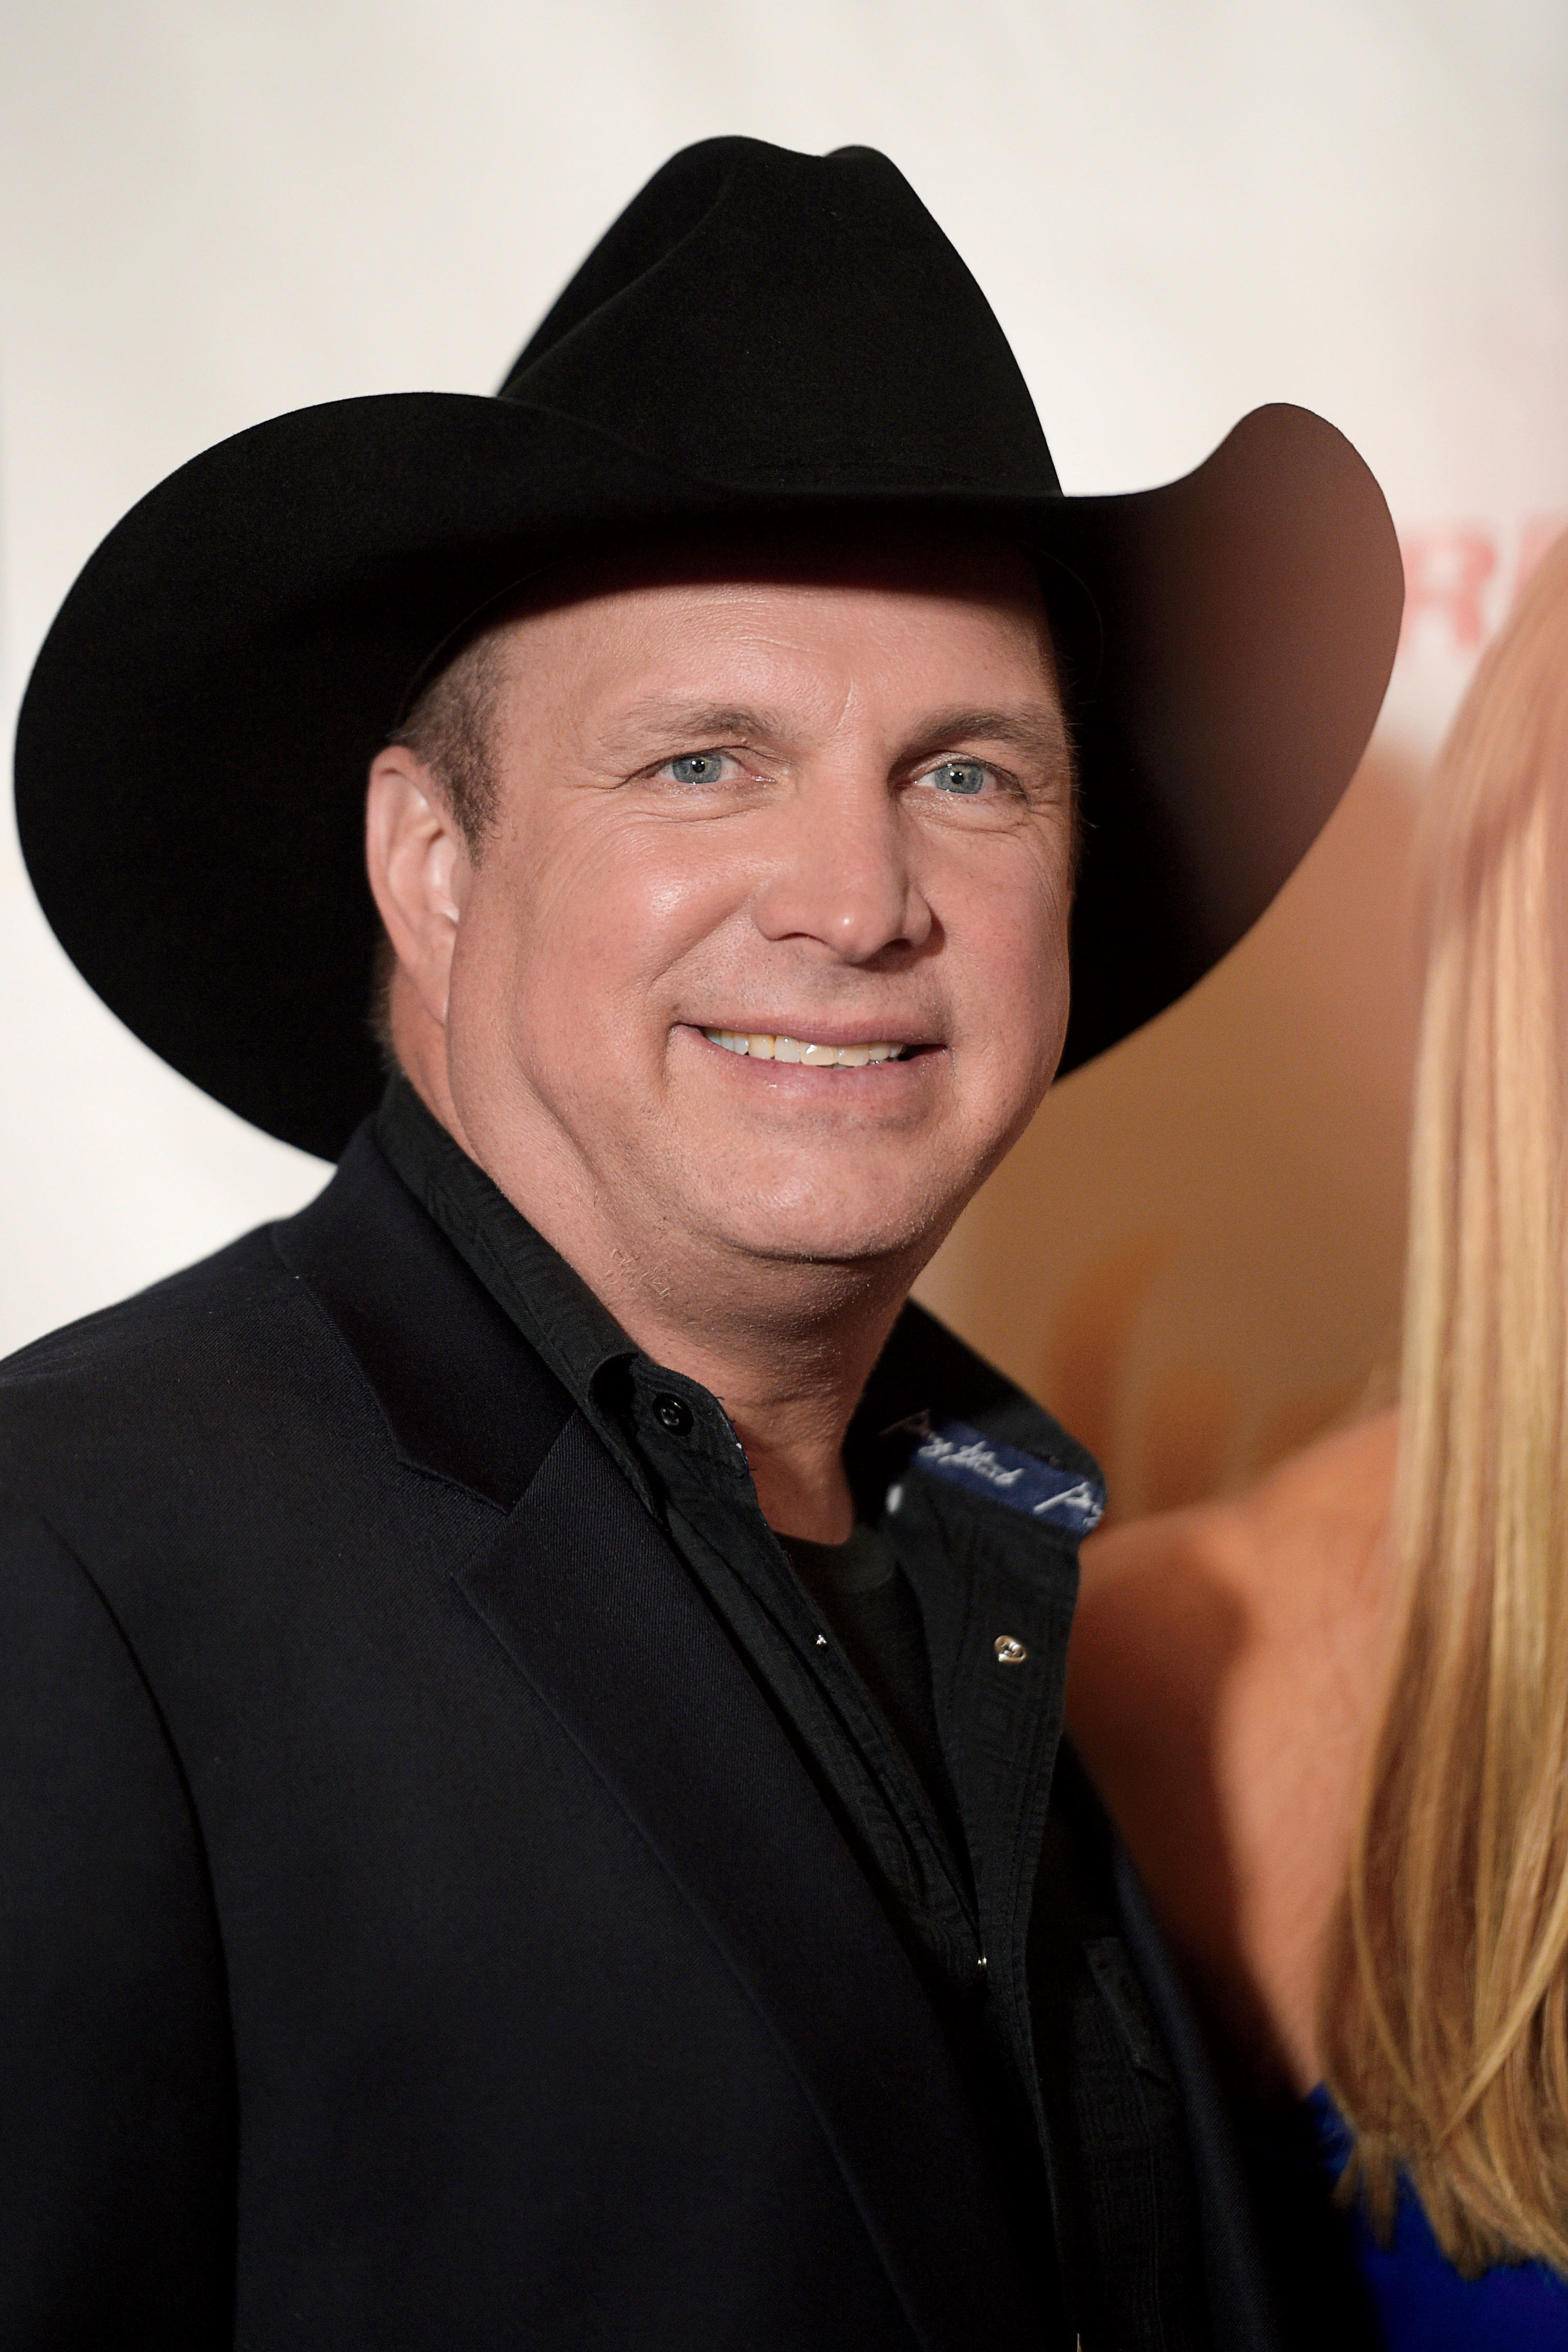 See Garth Brooks' Emotional Message After Las Vegas Shooting